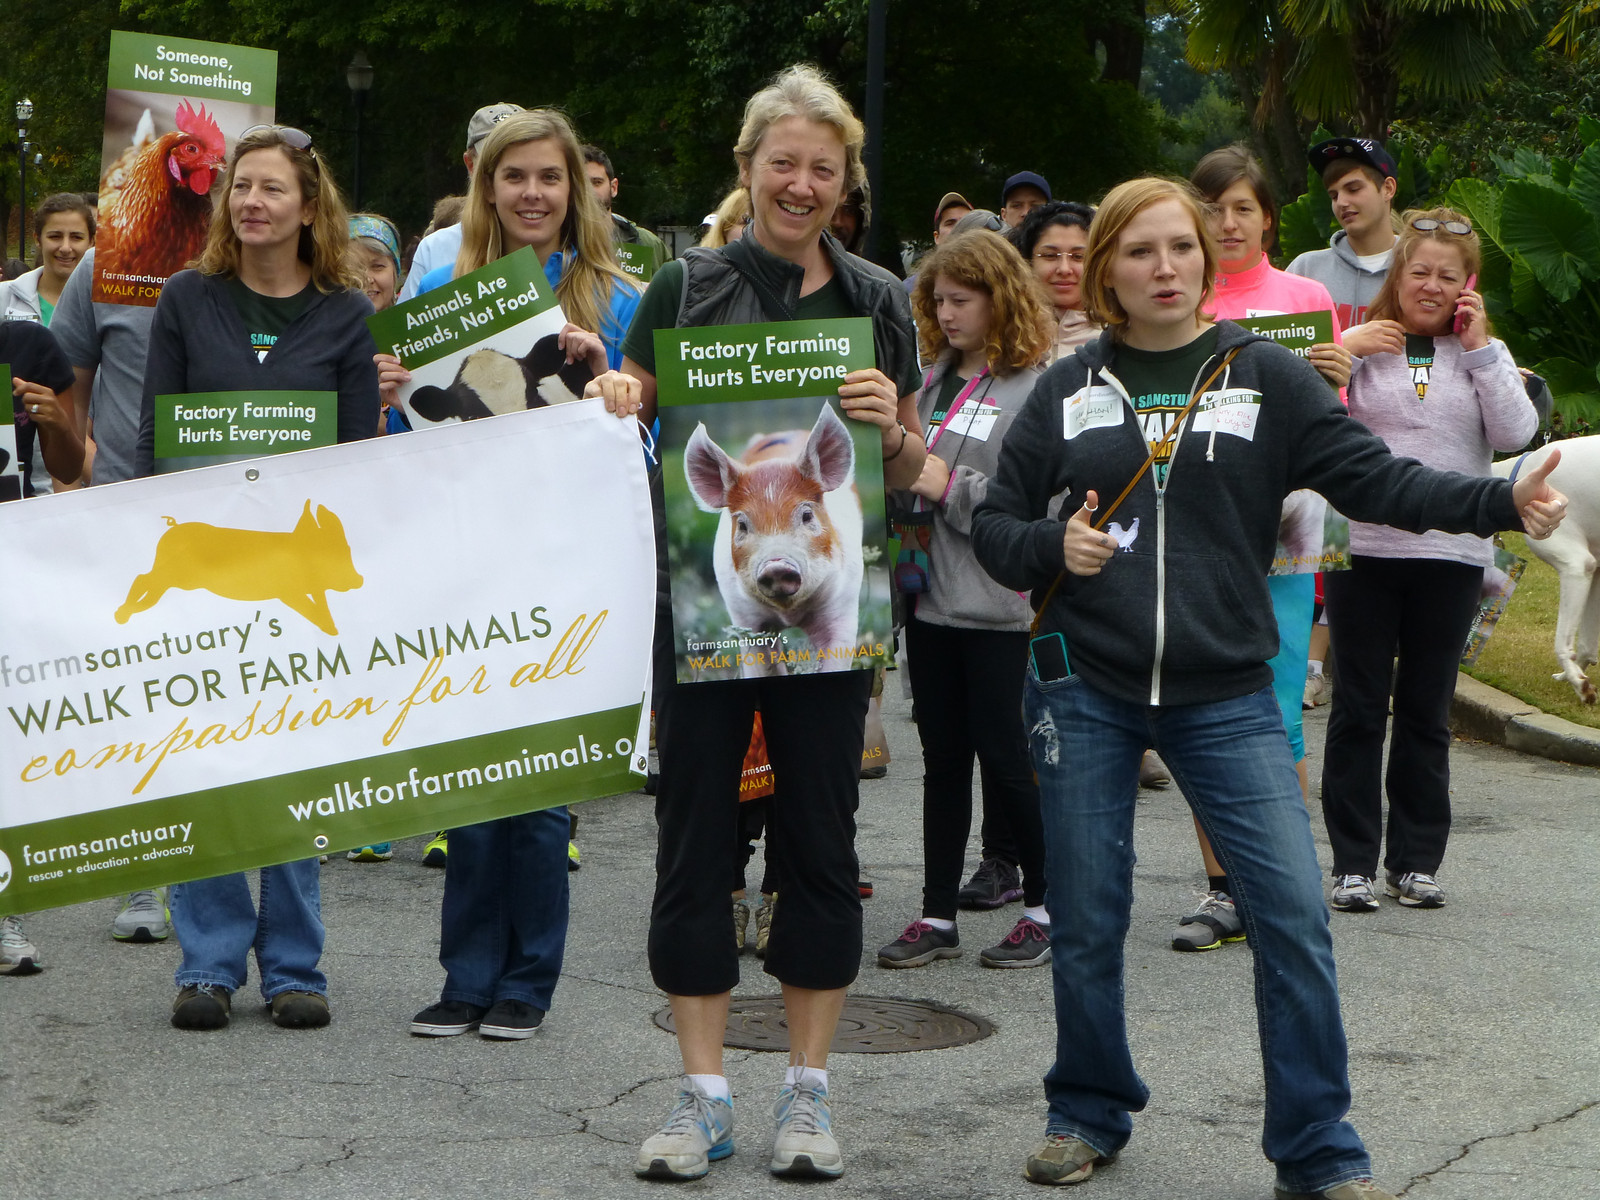 walk-for-animals-2013-10-19-b